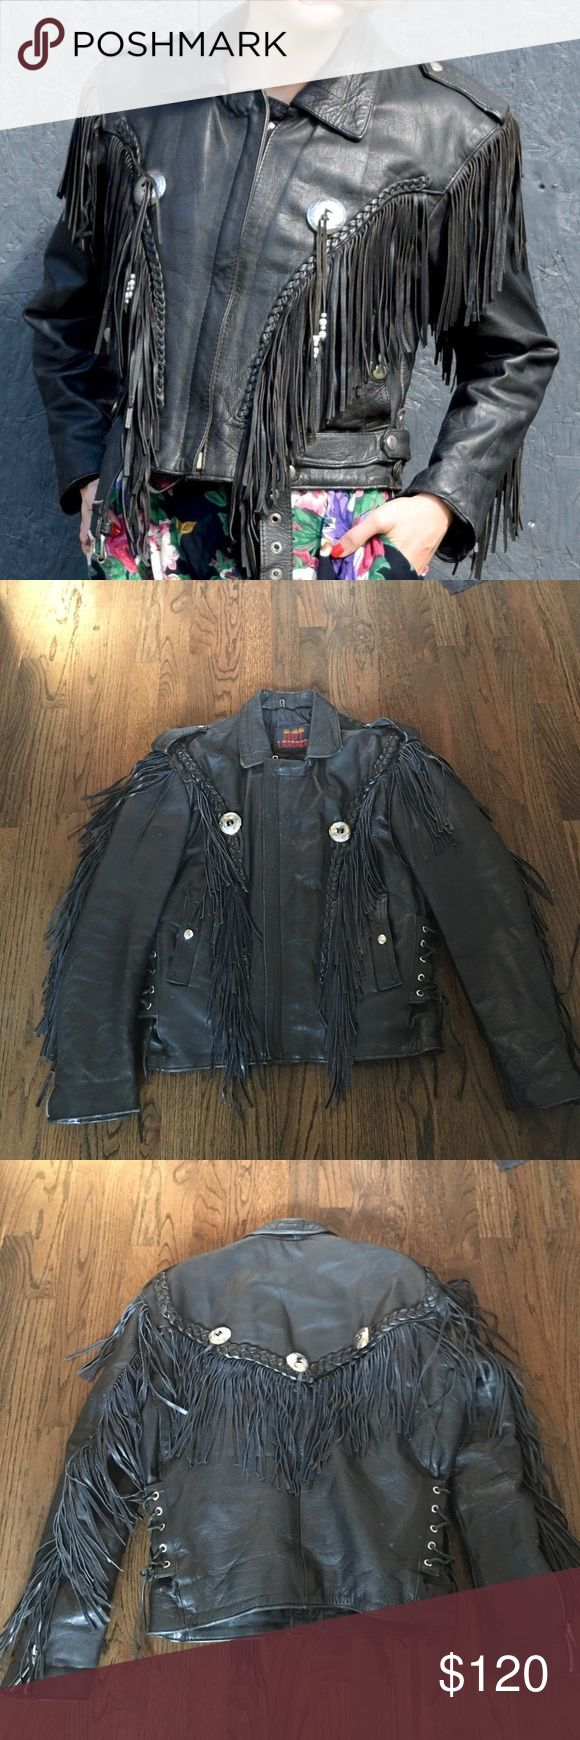 """Vintage Hot Leathers Fringe Biker Jacket  Get the look! The first pic is not the exact jacket but very close. This is such an incredible piece, with beautiful leather fringe and conchos, with braiding, and zippers. Says a size sm/m but I feel it's more of a large. Shoulder to shoulder is 21"""". This real leather jacket is heavy, a true Biker jacket. In pristine condition, from a smoke free home. Hot Leathers Jackets & Coats"""